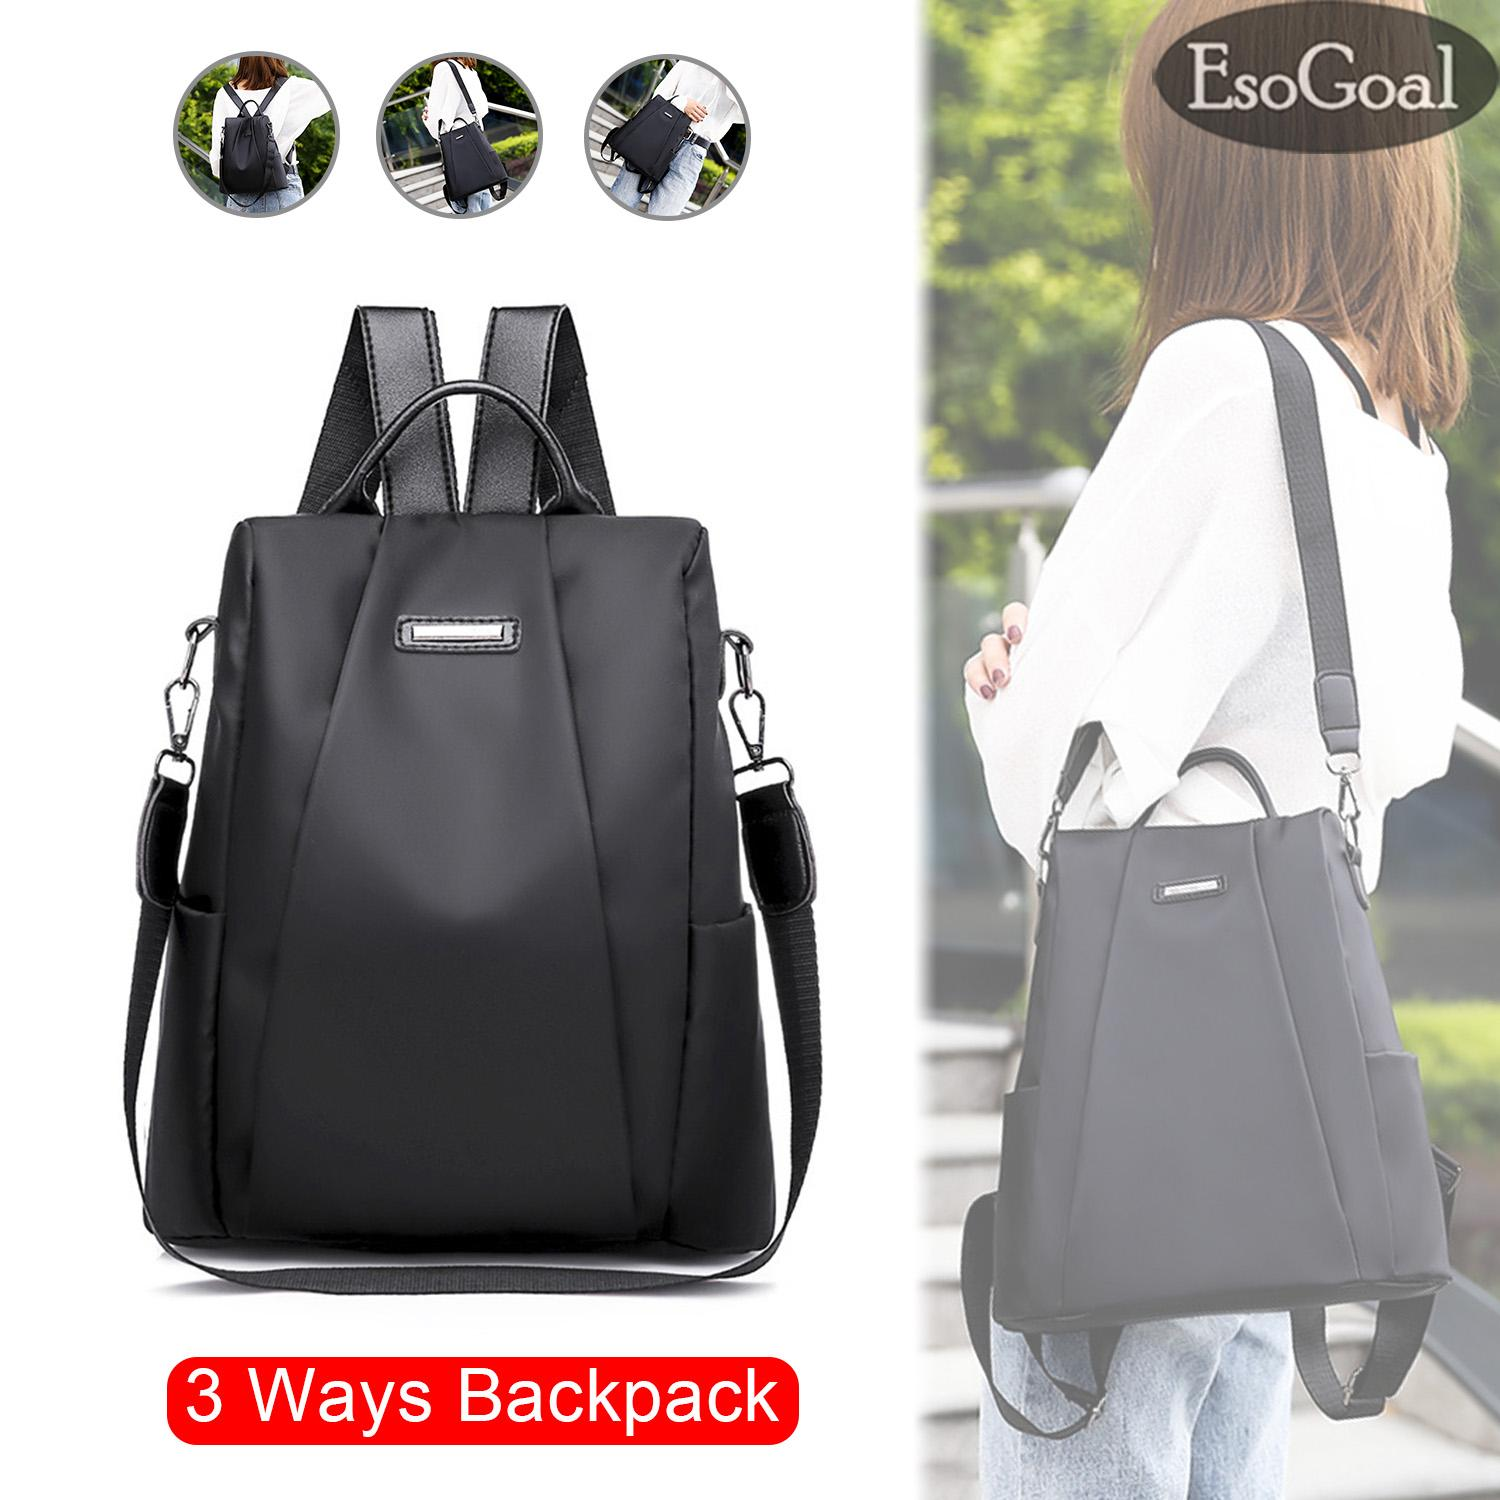 d2638a316820 EsoGoal Fashion Women Backpack Shoulder Bag Korea Style Anti-theft Backpack  College School Bag For